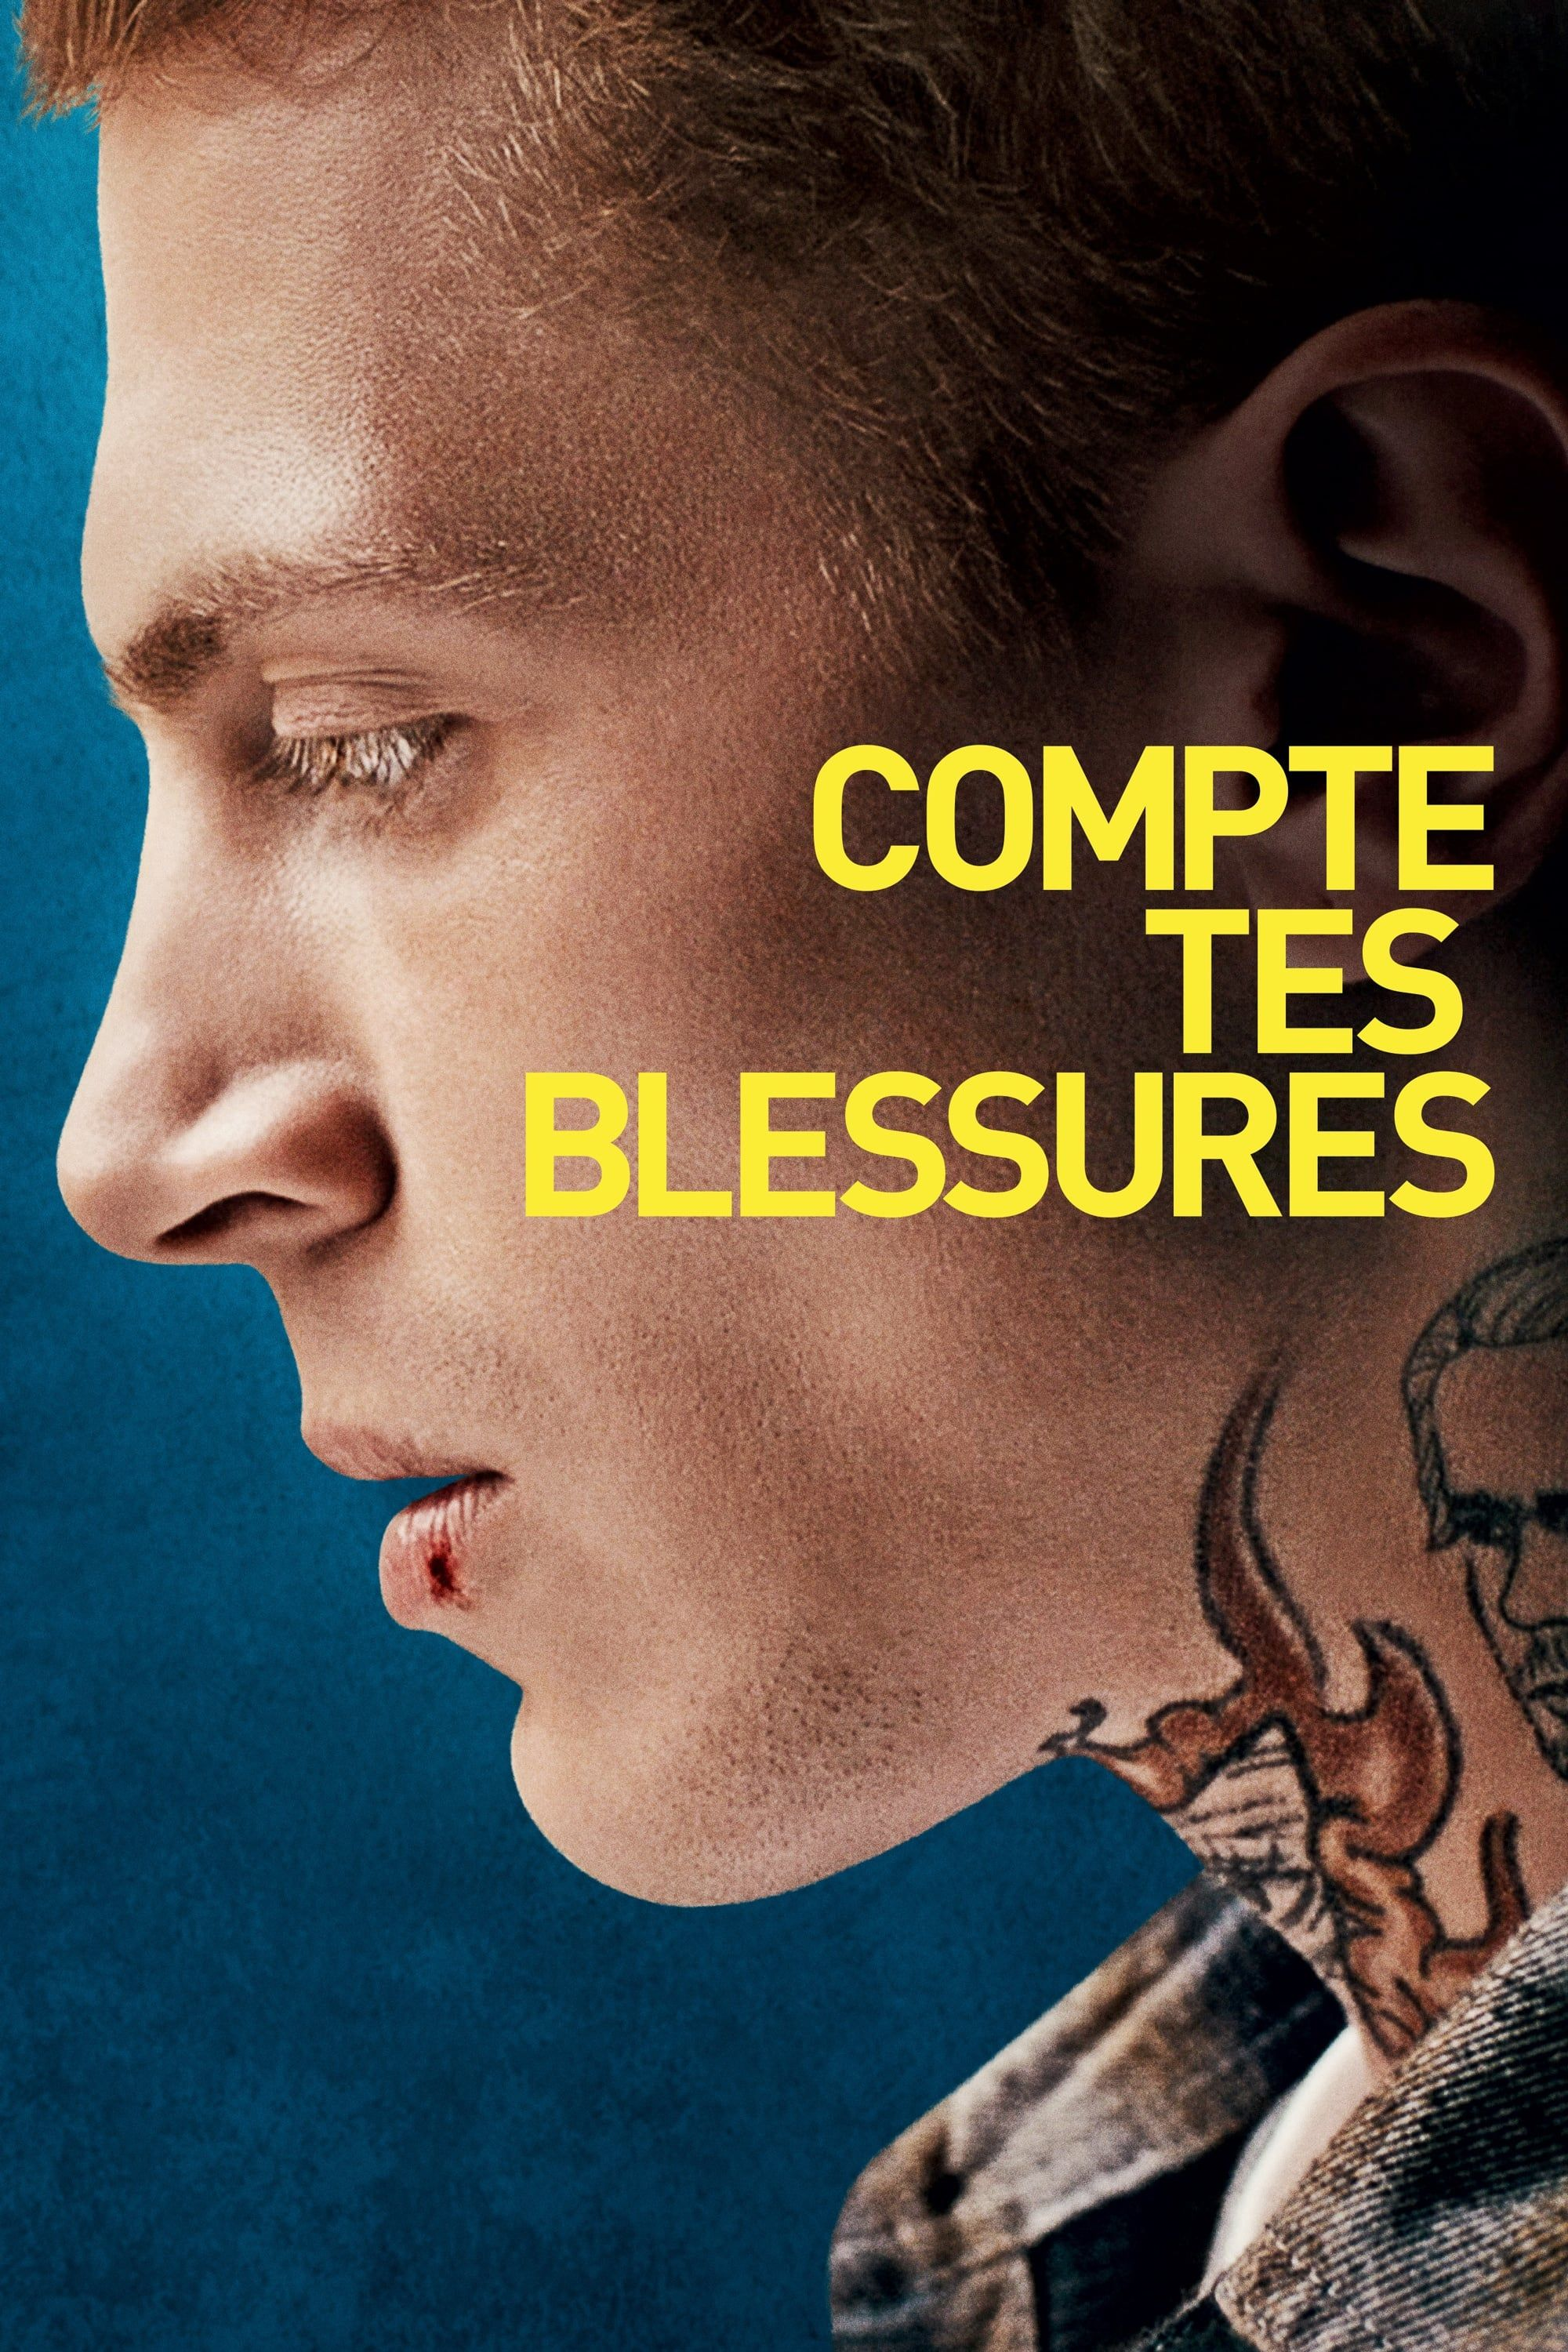 Compte tes blessures  streaming